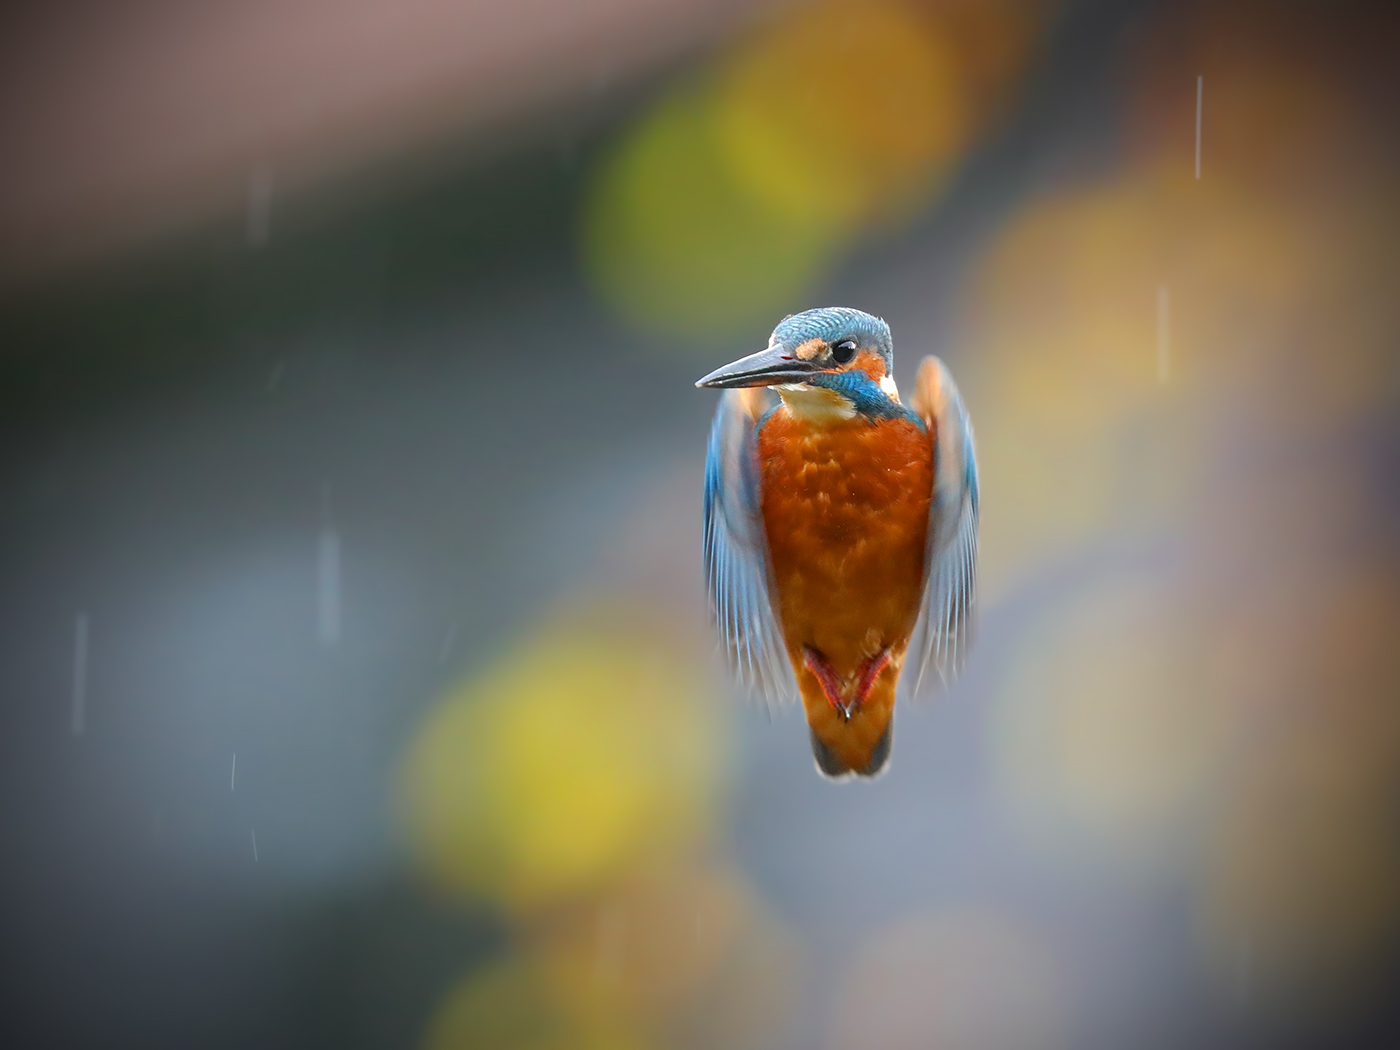 Hovering in the rain Landscape